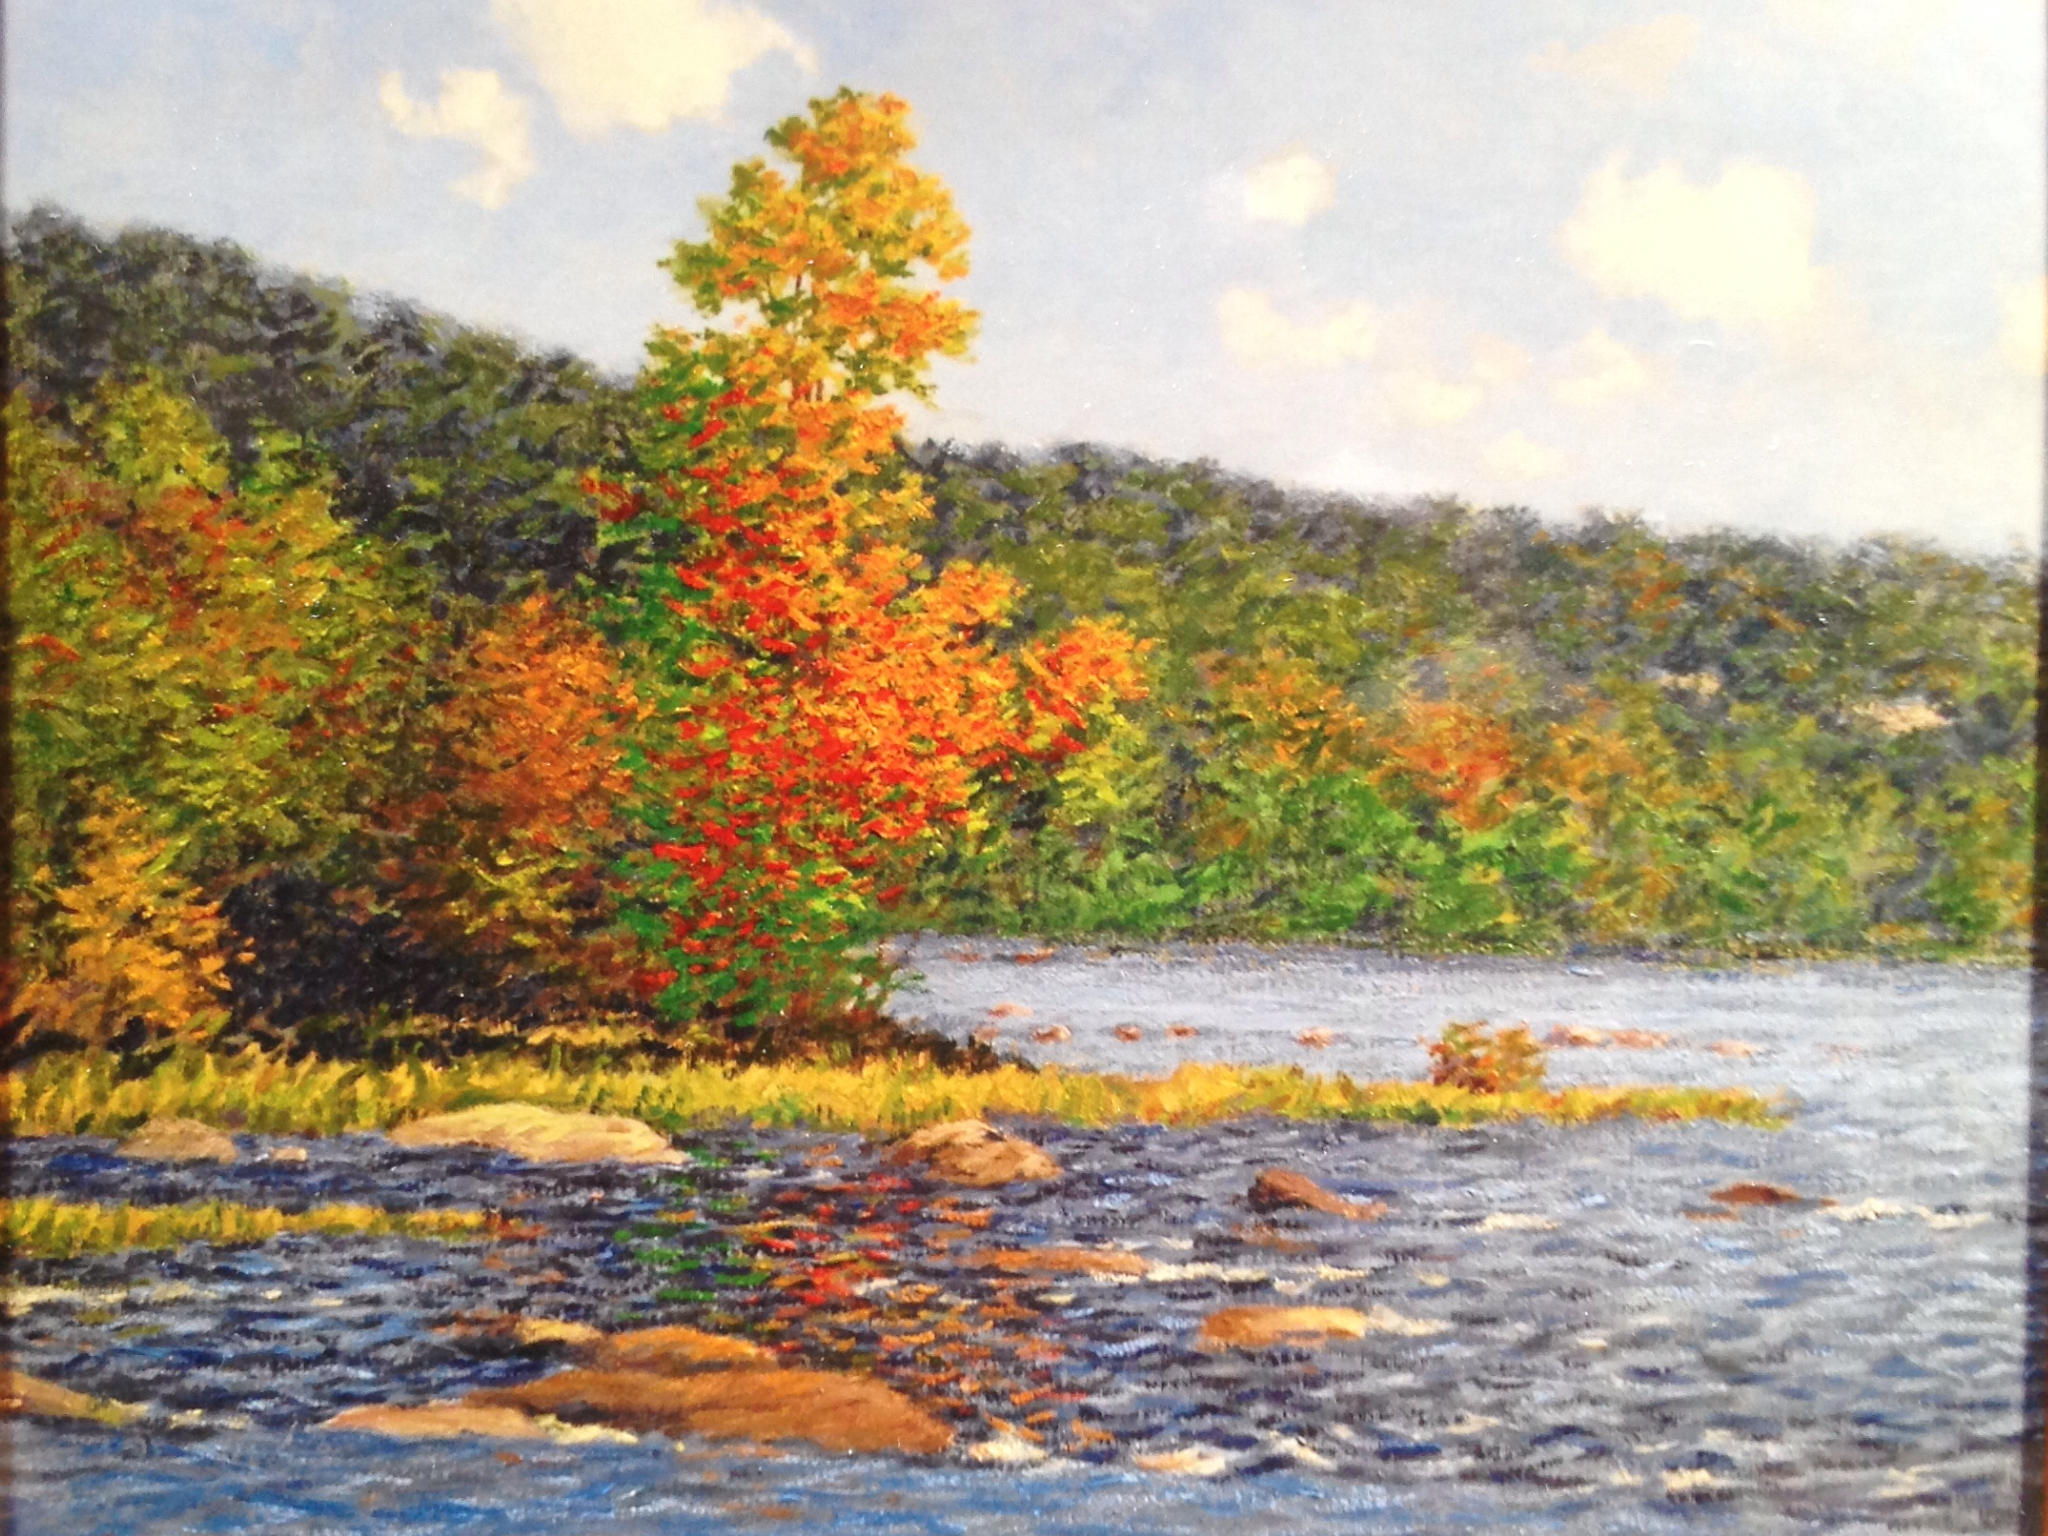 James River near Pony Pasture by Durwood Domissee